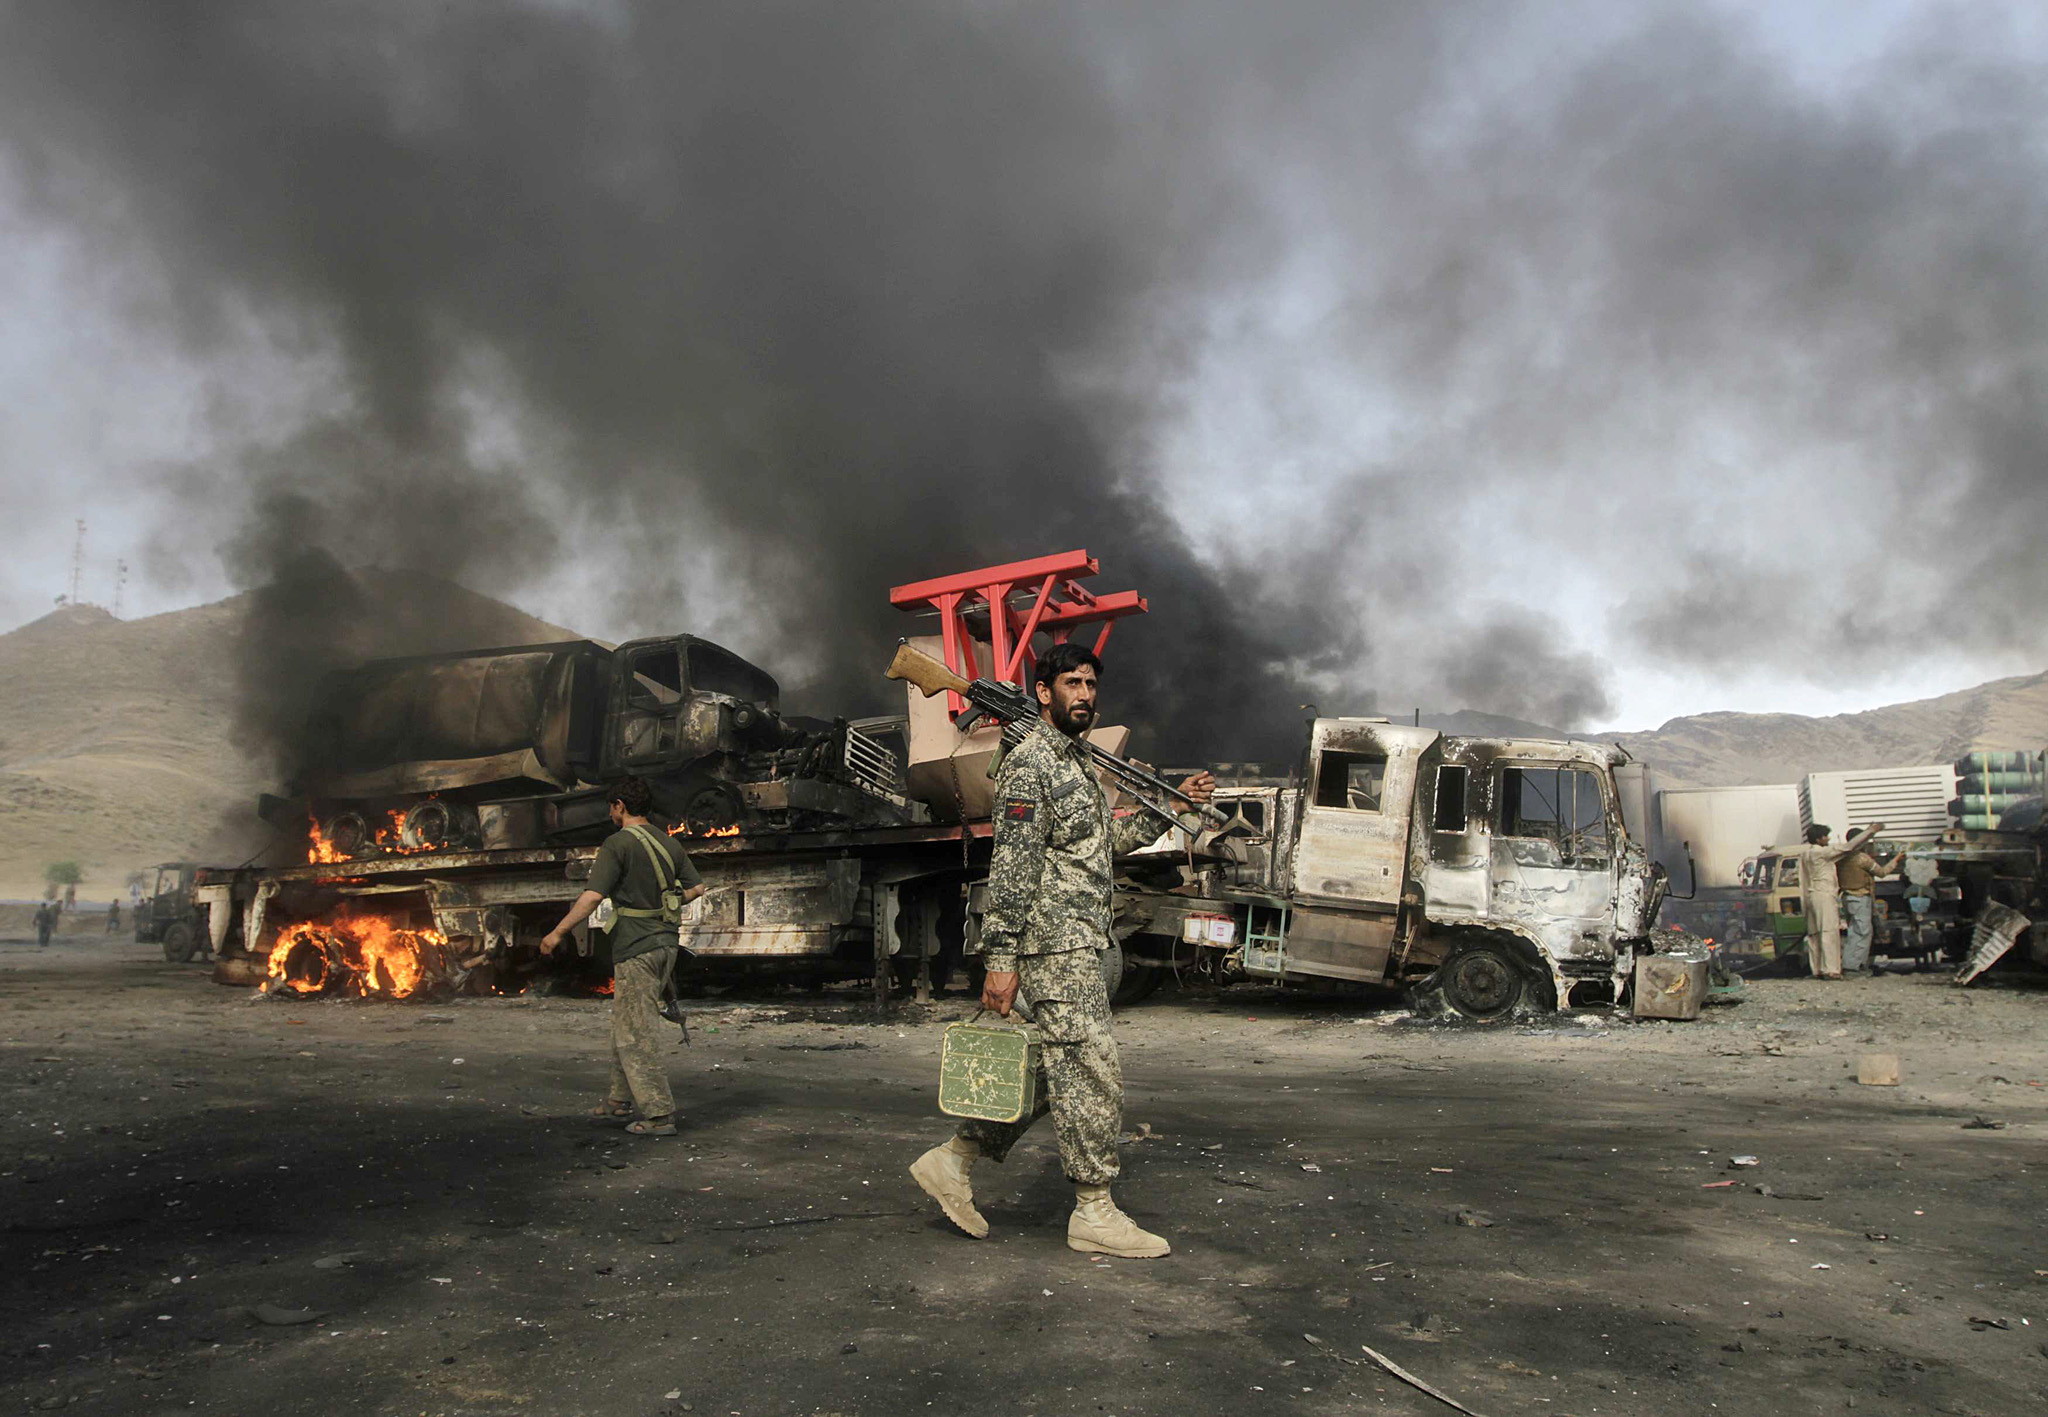 Afghan security forces walk near burning NATO supply trucks after, what police officials say, was an attack by militants in the Torkham area...Afghan security forces walk near burning NATO supply trucks after, what police officials say, was an attack by militants in the Torkham area near the Pakistani-Afghan in Nangarhar Province June 19, 2014. According to officials on Thursday, at least 37 trucks belonging to NATO forces were destroyed after three suicide bombers targeted the NATO supply trucks, with two civilians wounded in the attack.   REUTERS/Parwiz (AFGHANISTAN - Tags: CIVIL UNREST POLITICS)